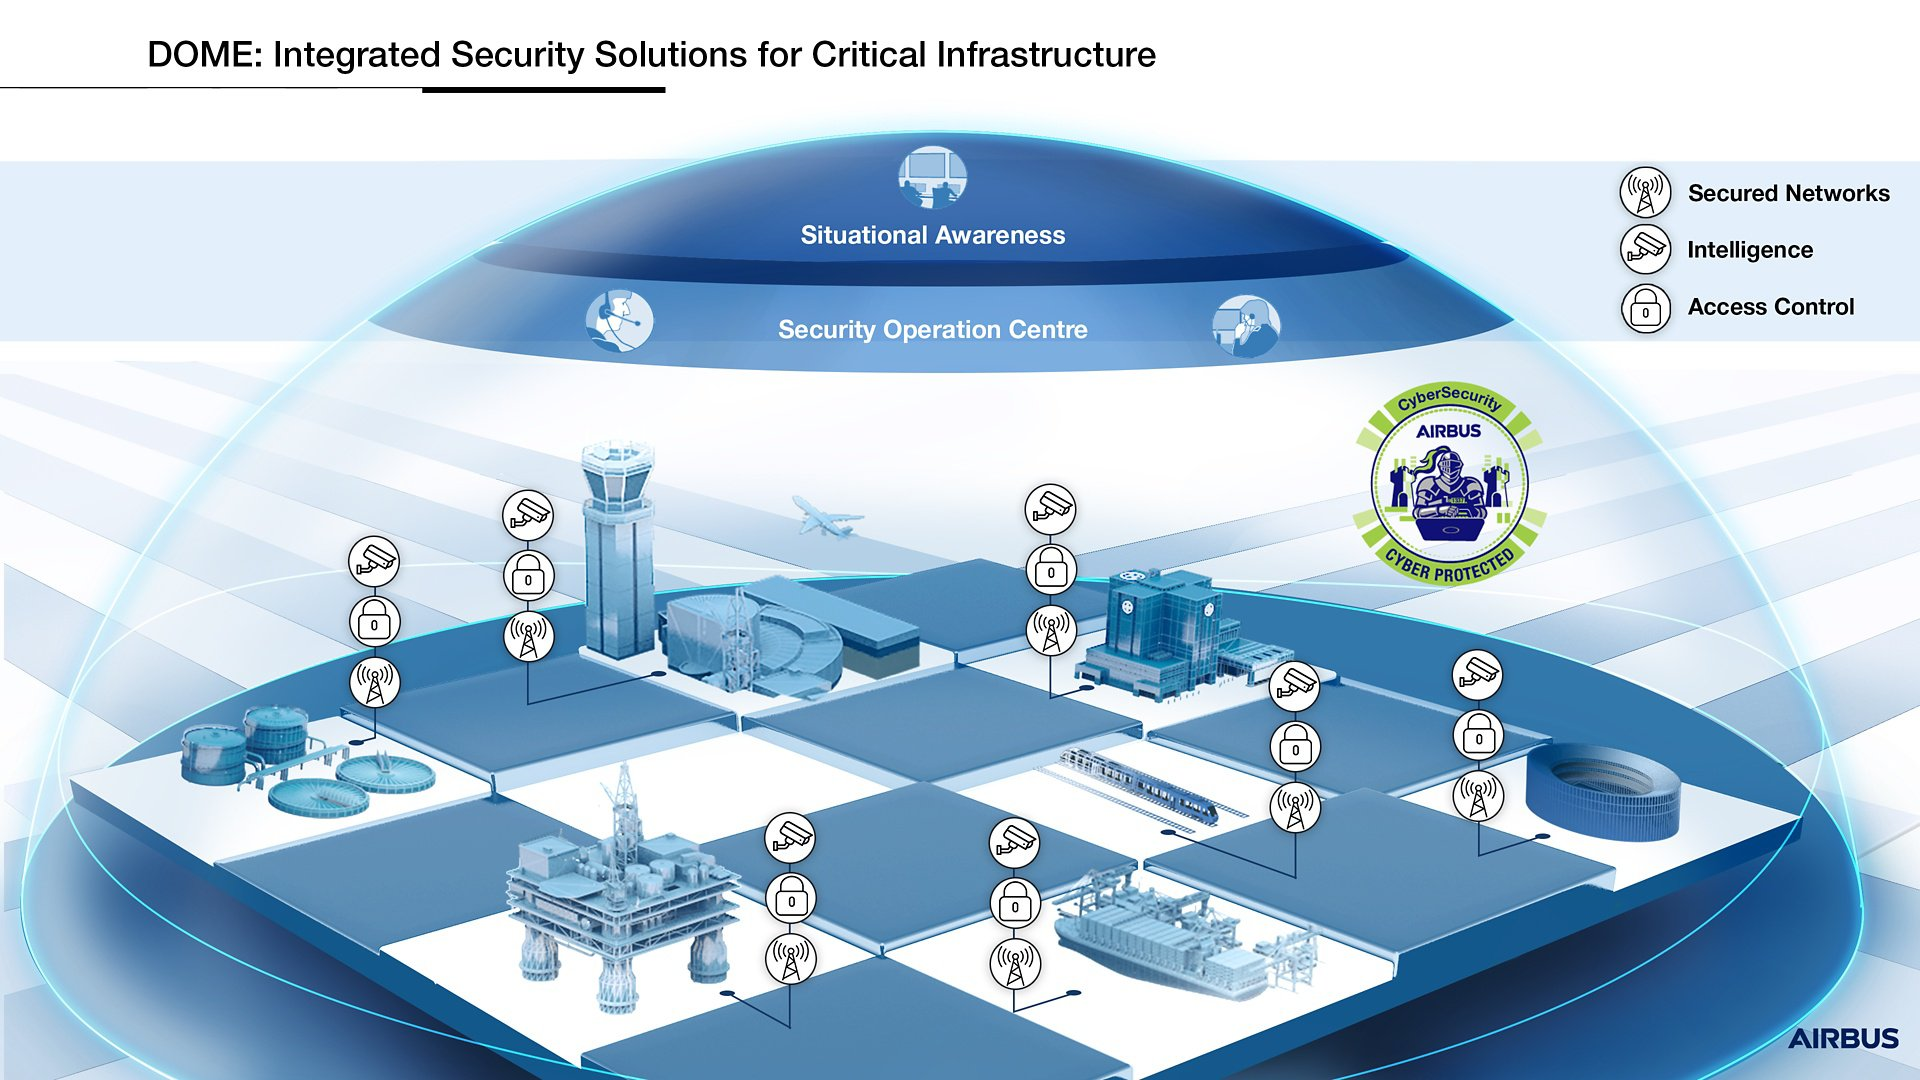 DOME - One solution for Critical Infrastructure Protection